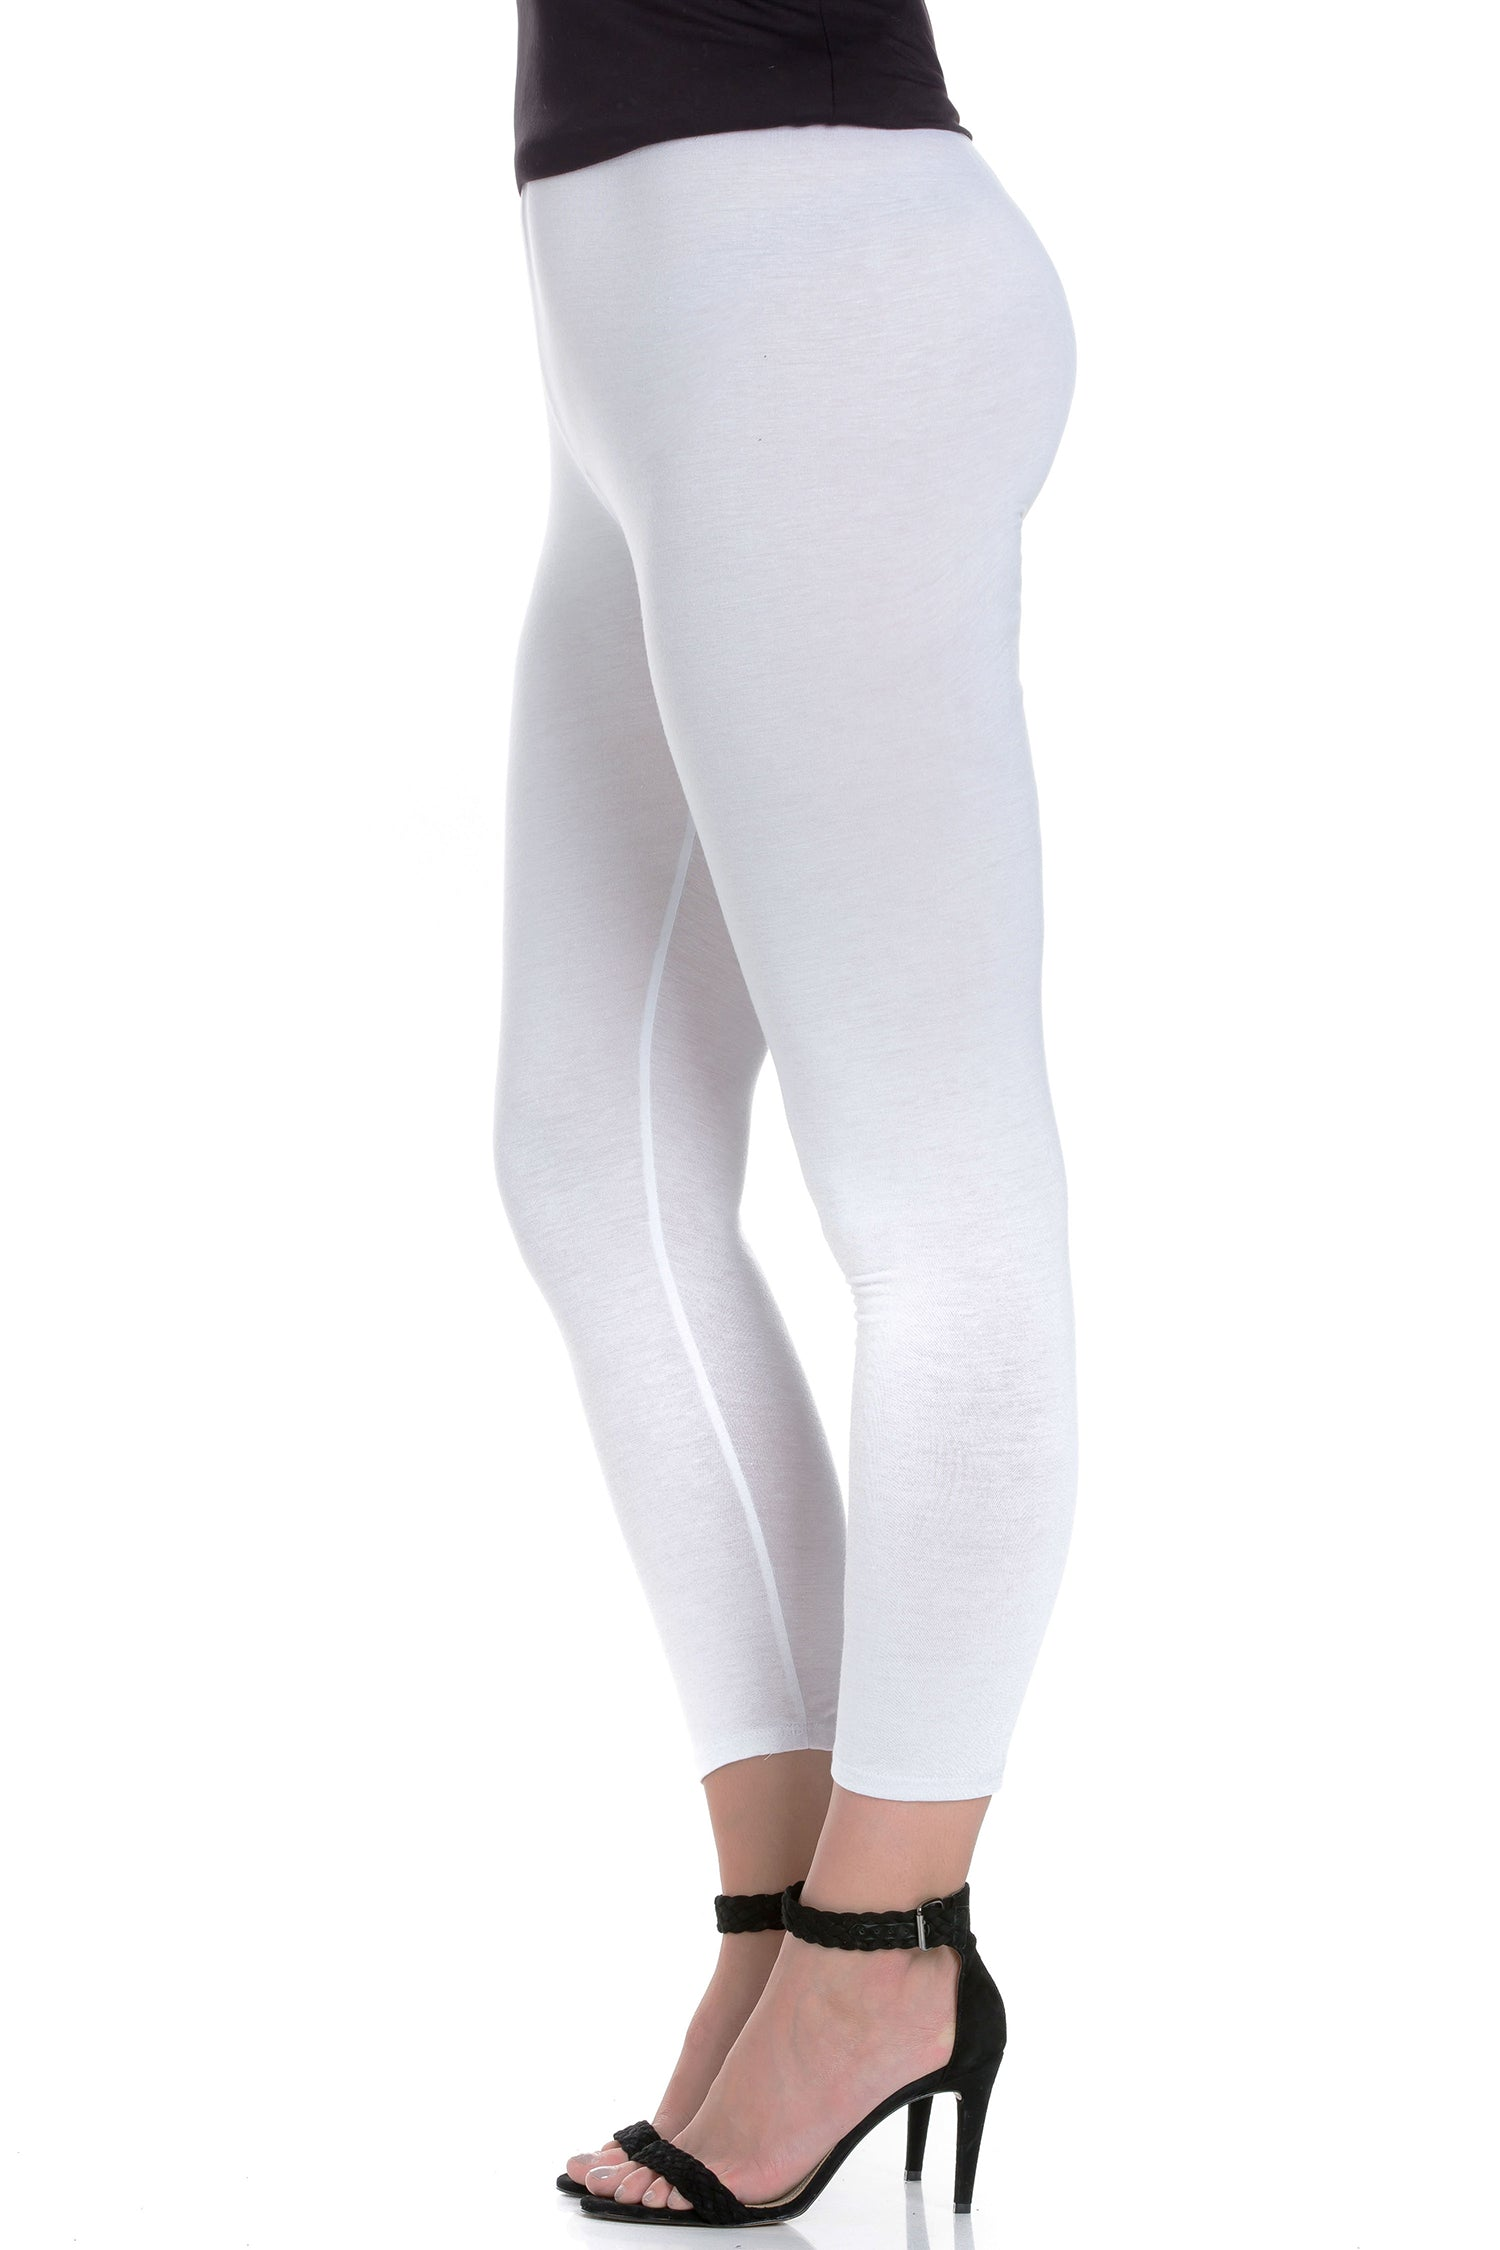 24seven Comfort Apparel Comfortable Ankle Length Plus Size Leggings-PANT-24Seven Comfort Apparel-WHITE-1X-24/7 Comfort Apparel